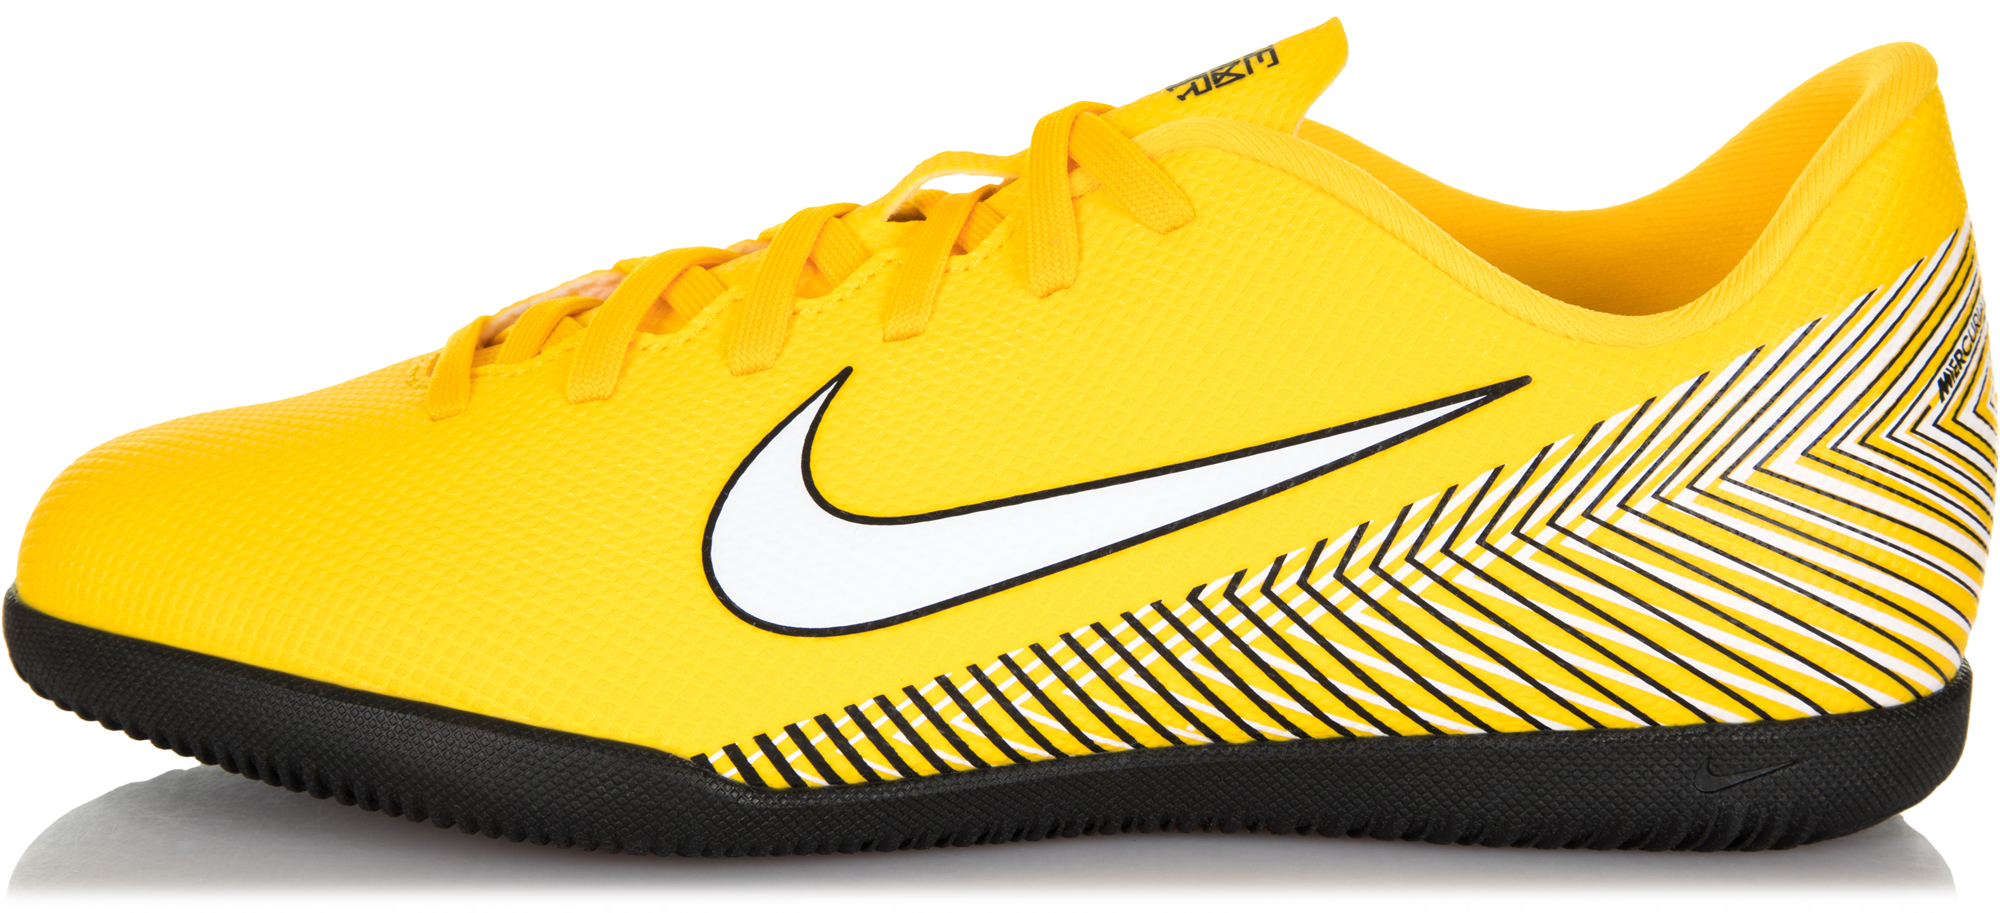 Nike Бутсы для мальчиков Nike Neymar Jr. VaporX 12 Club IC, размер 32 цена